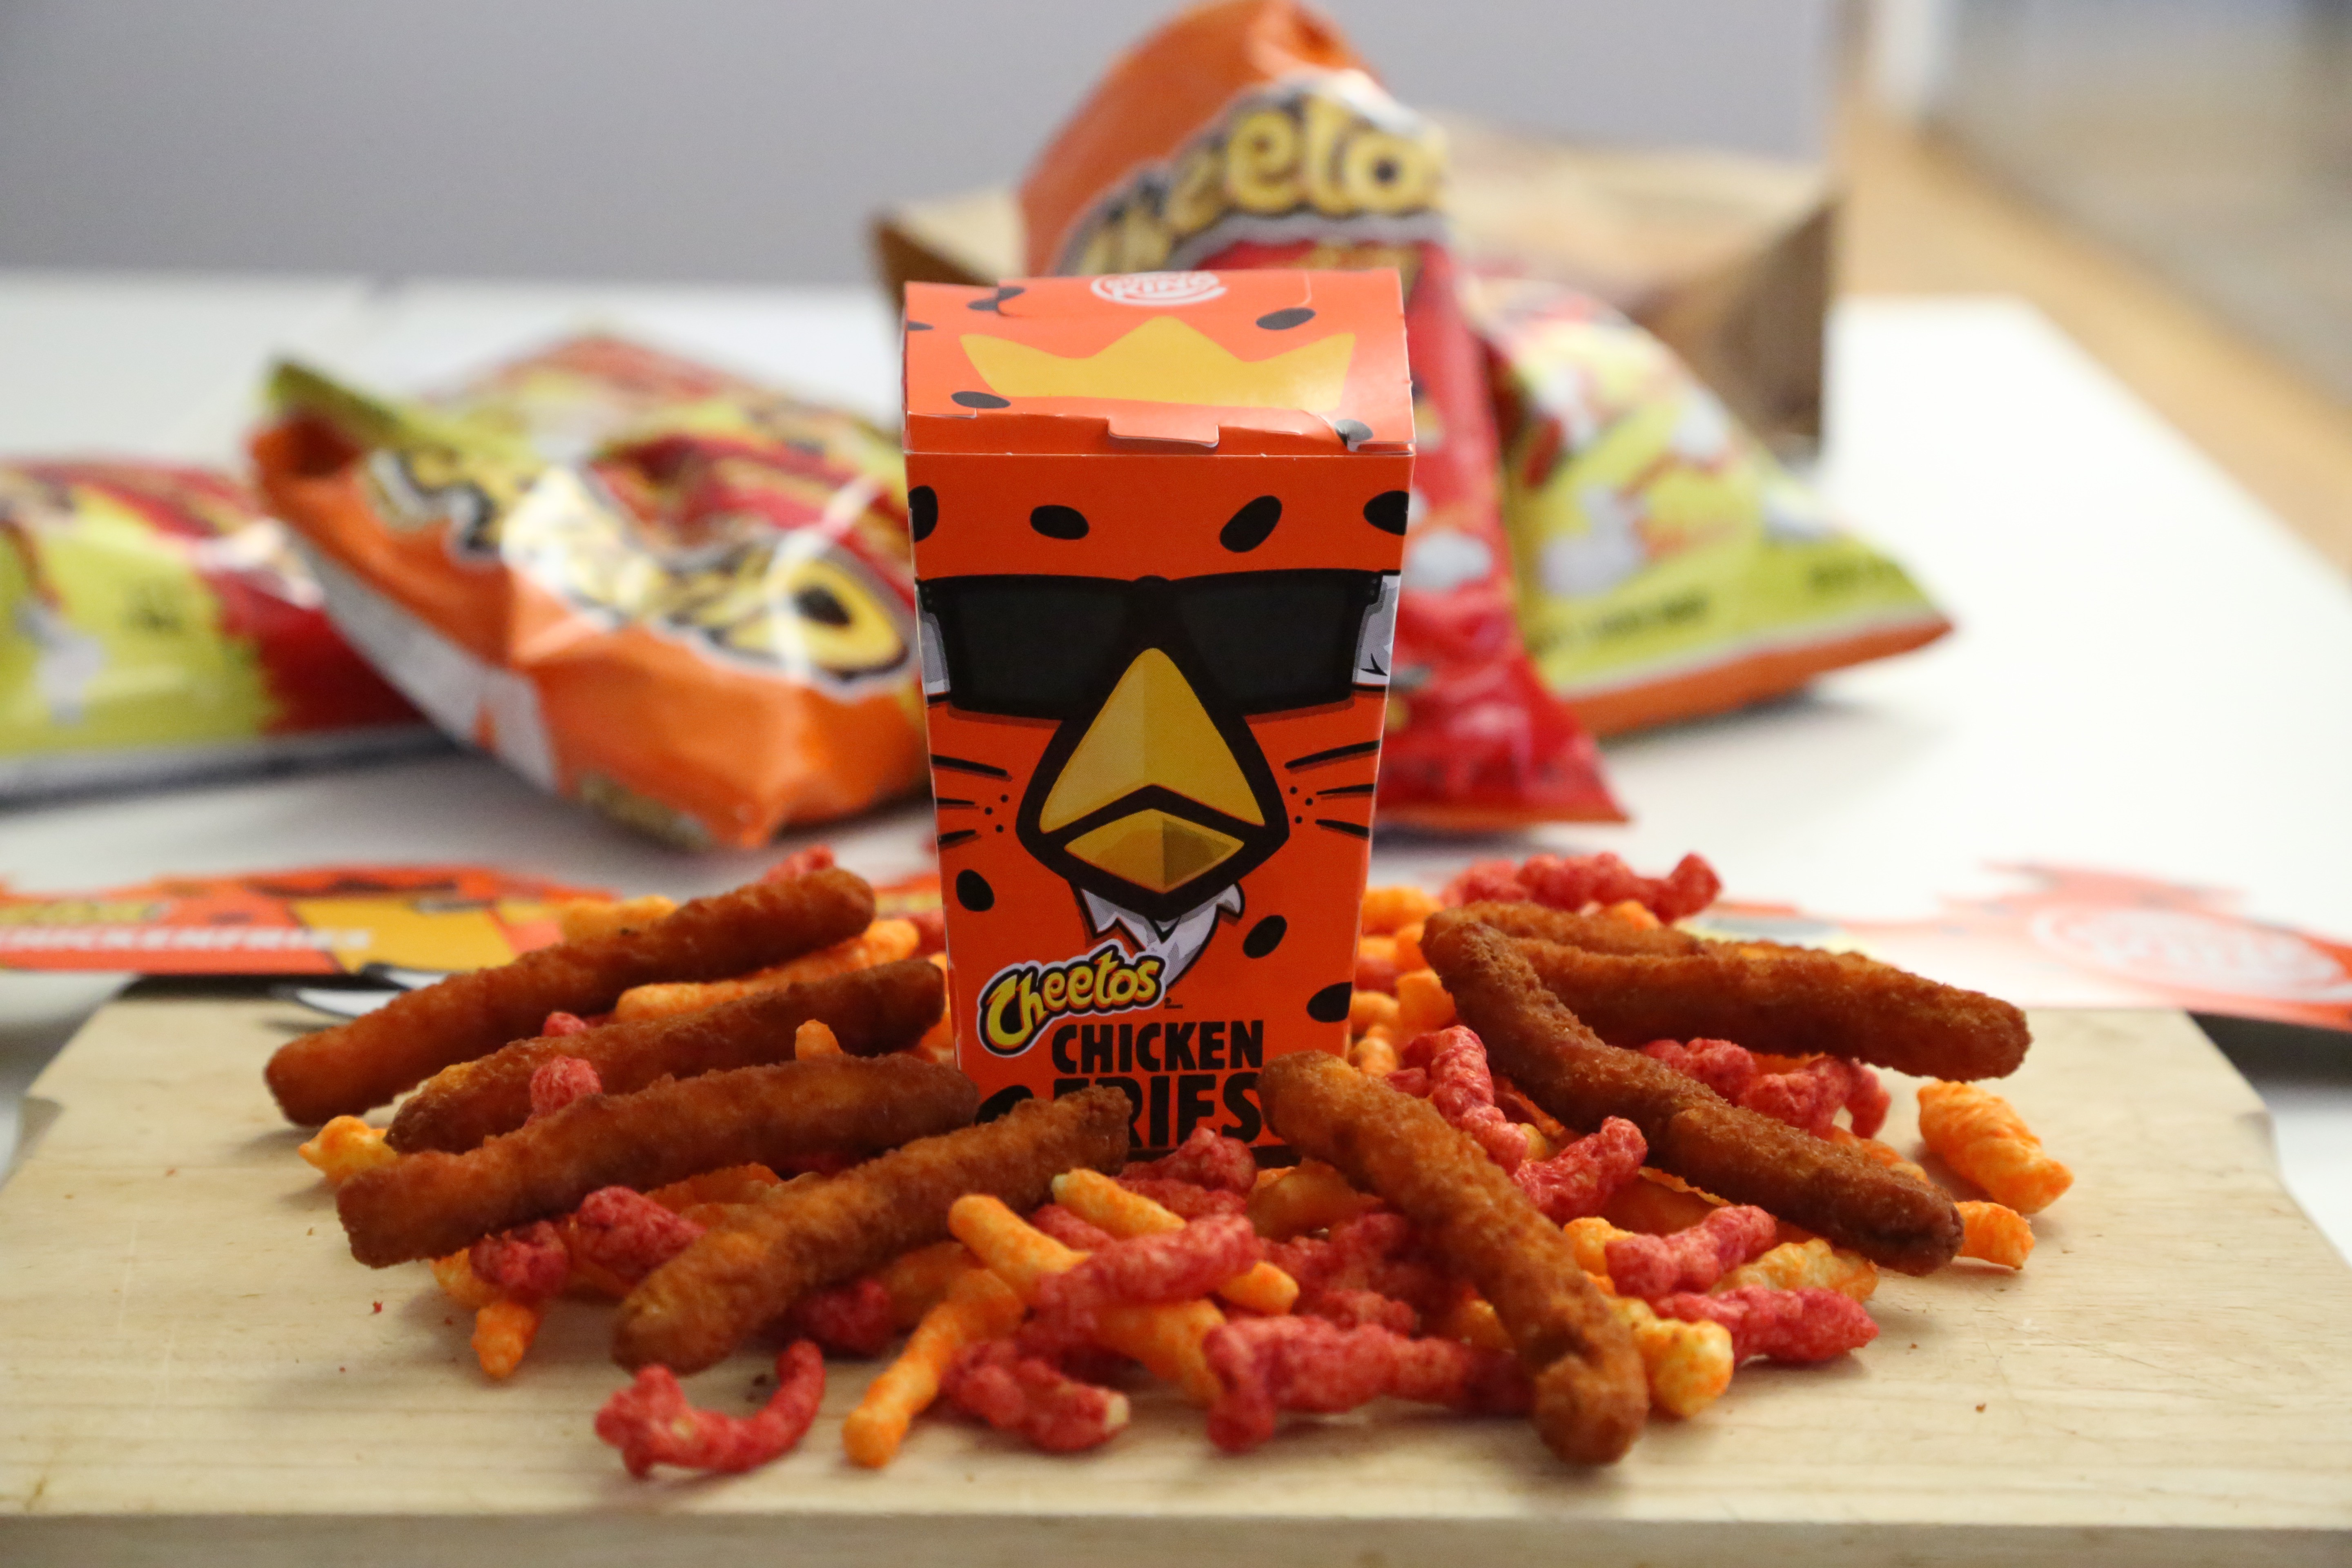 Cheetos Chicken Fries™ Are America's Bland, Corporate Future